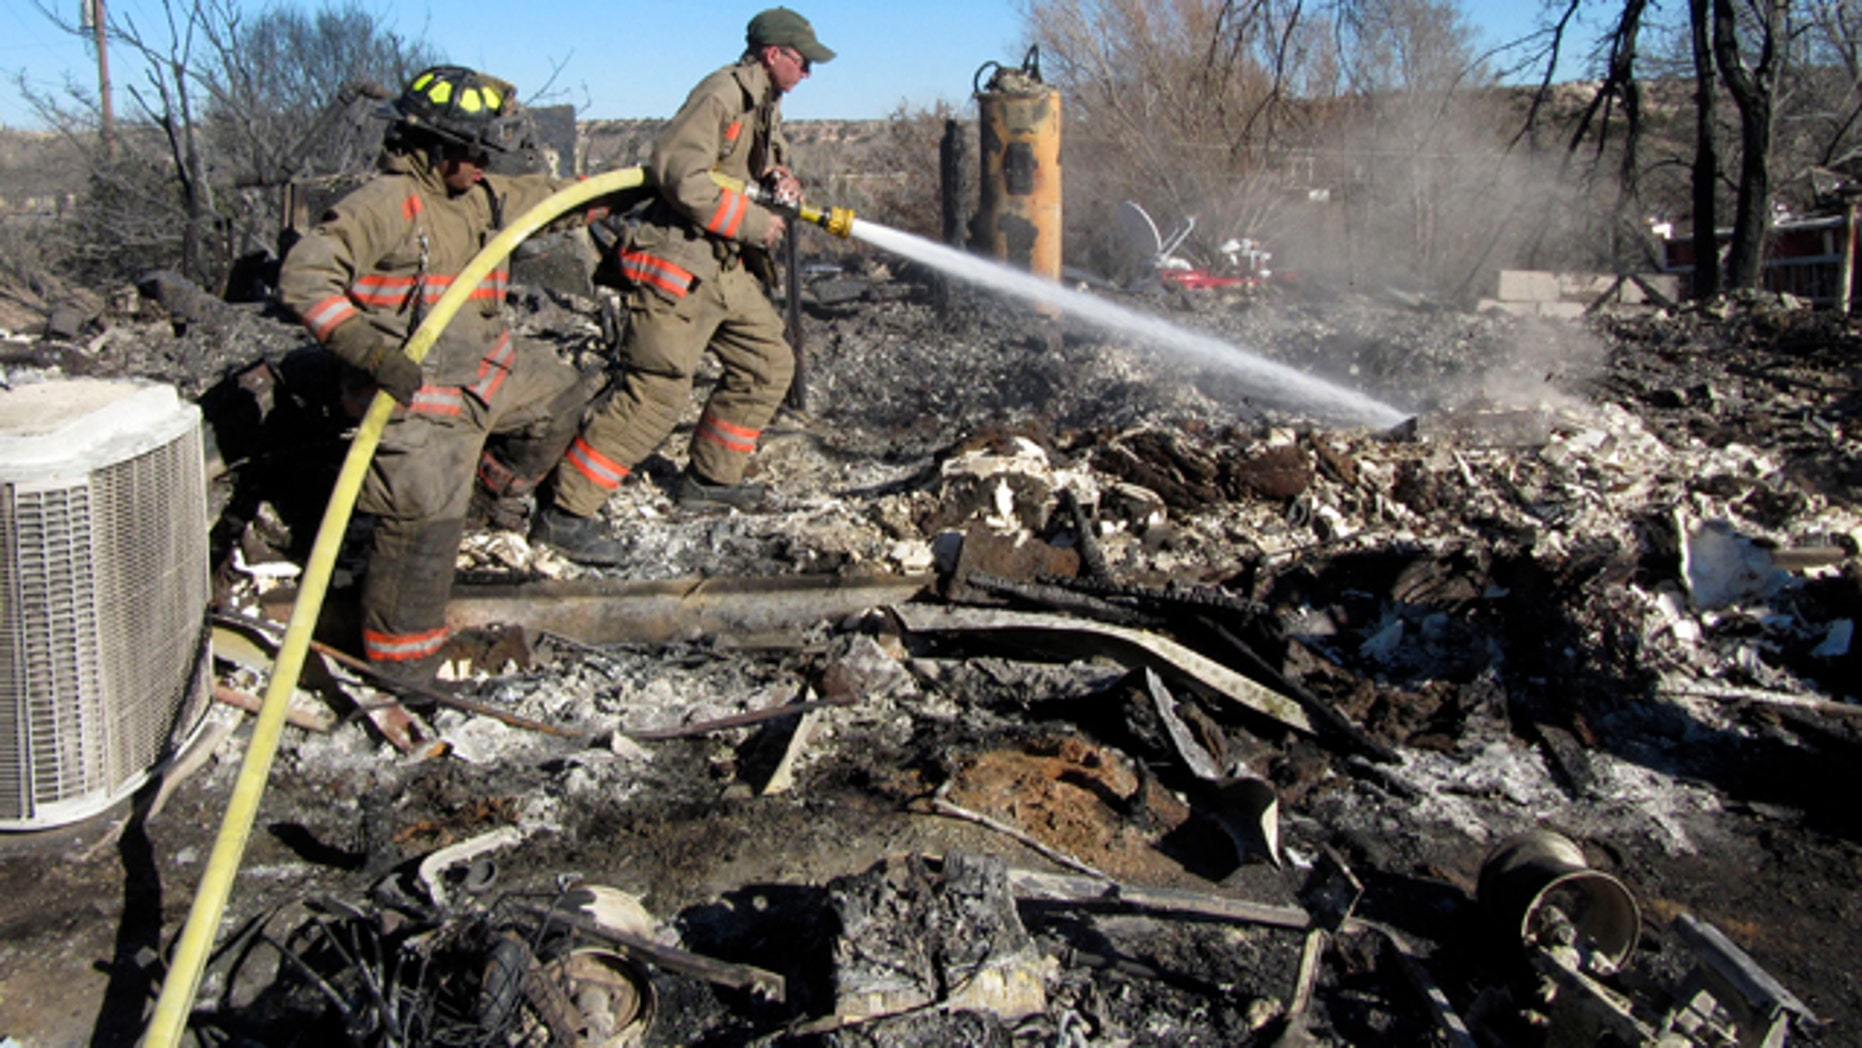 Feb. 28: Firefighters from Randall County work to douse hot spots at one of seven homes destroyed by wildfires in Lake Tanglewood, a small community of about 1,300 southeast of Amarillo, Texas.